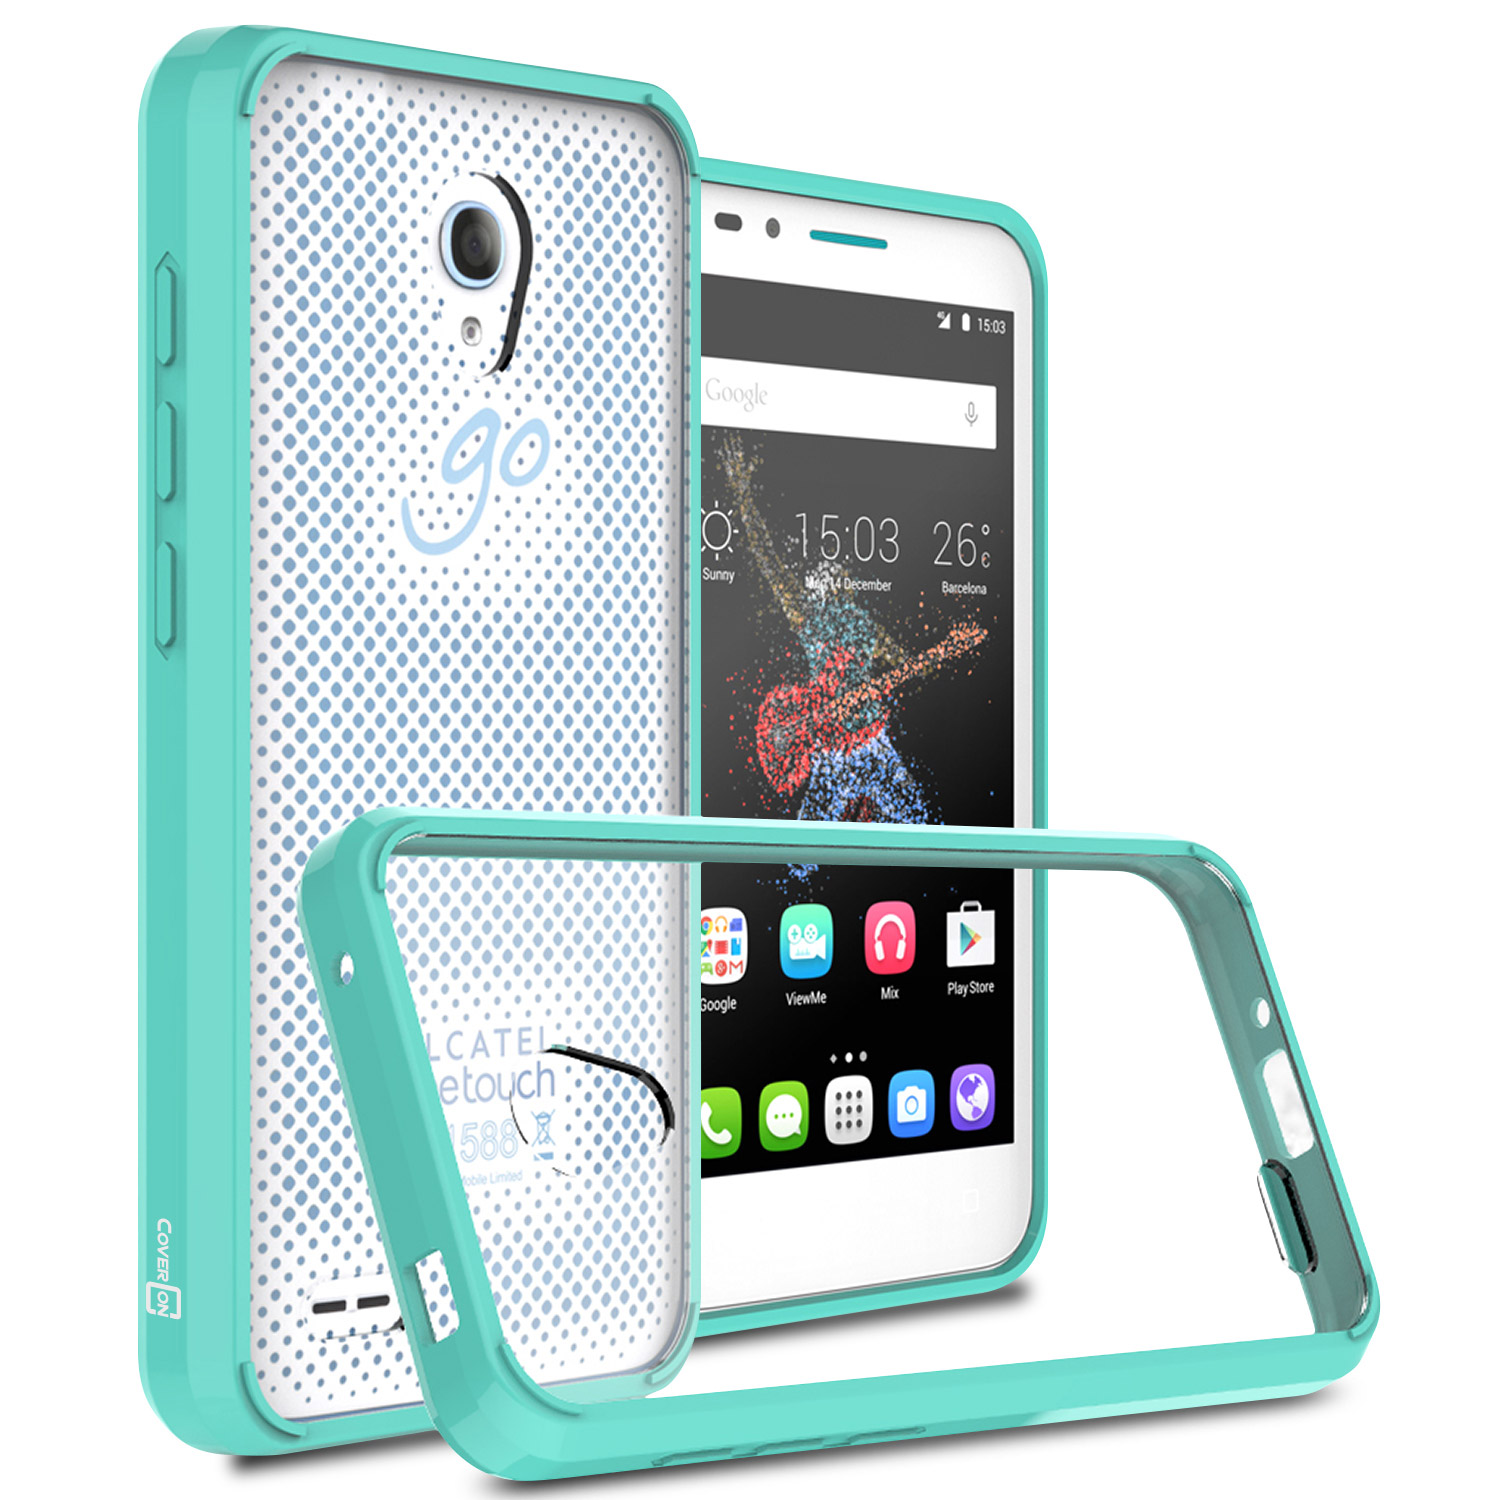 the best attitude 3f782 88fbe Details about Teal Hard Back Cover + Flex Bumpers Case for ALCATEL OneTouch  Go Play / Conquest